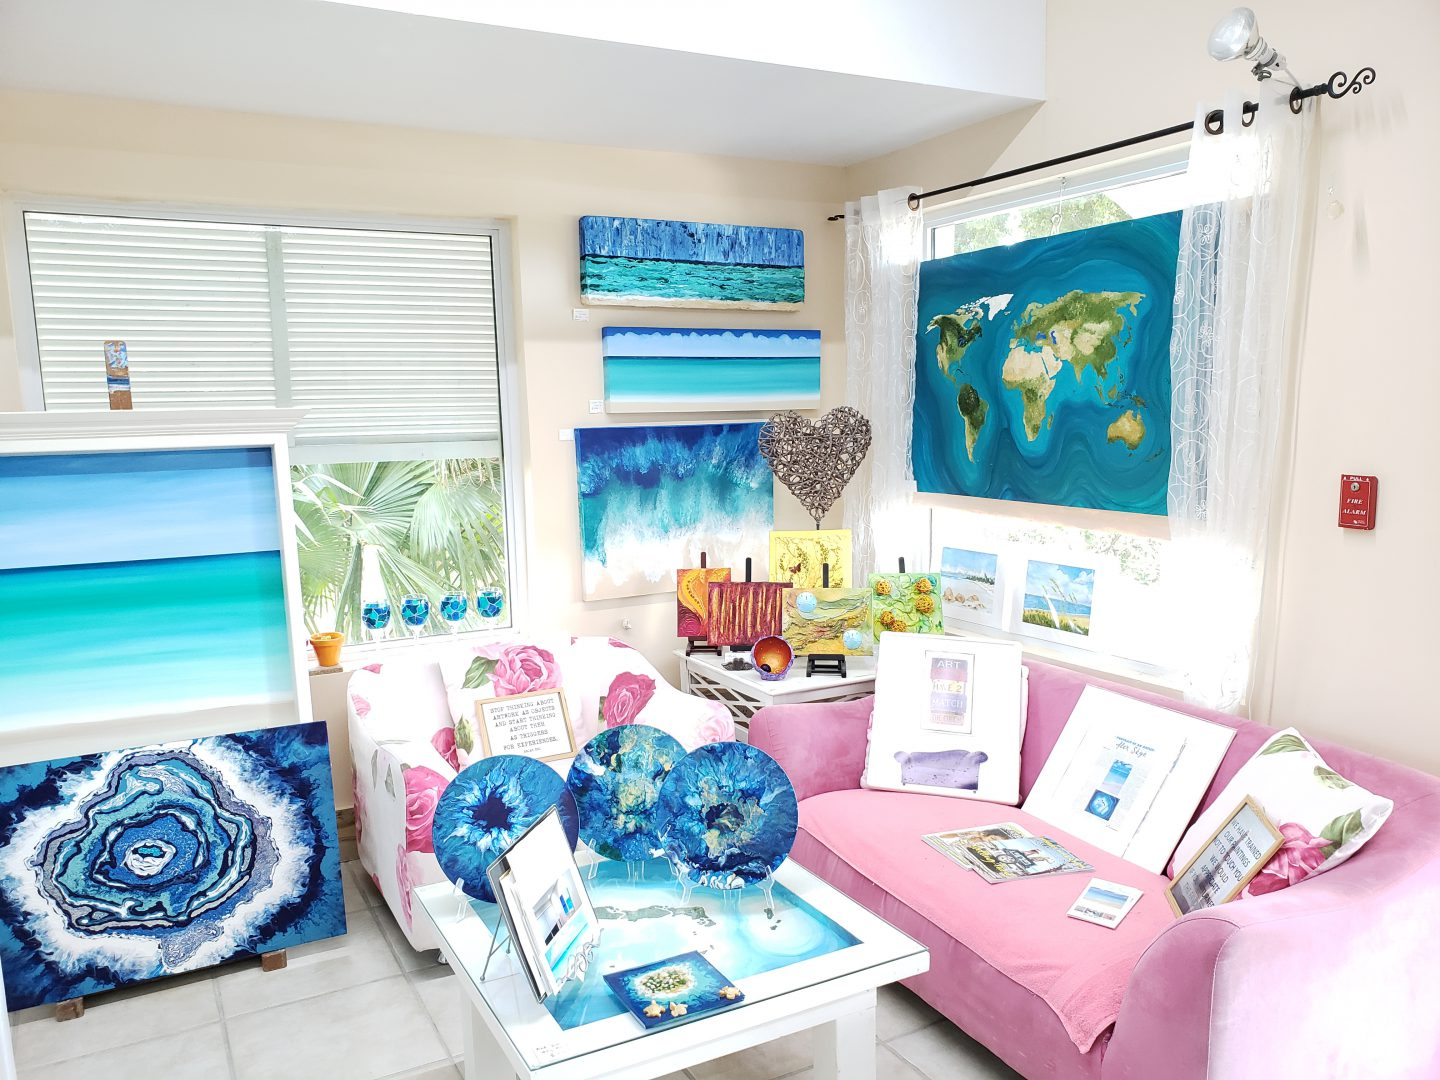 Making Waves Art Studio in Providenciales Turks and Caicos